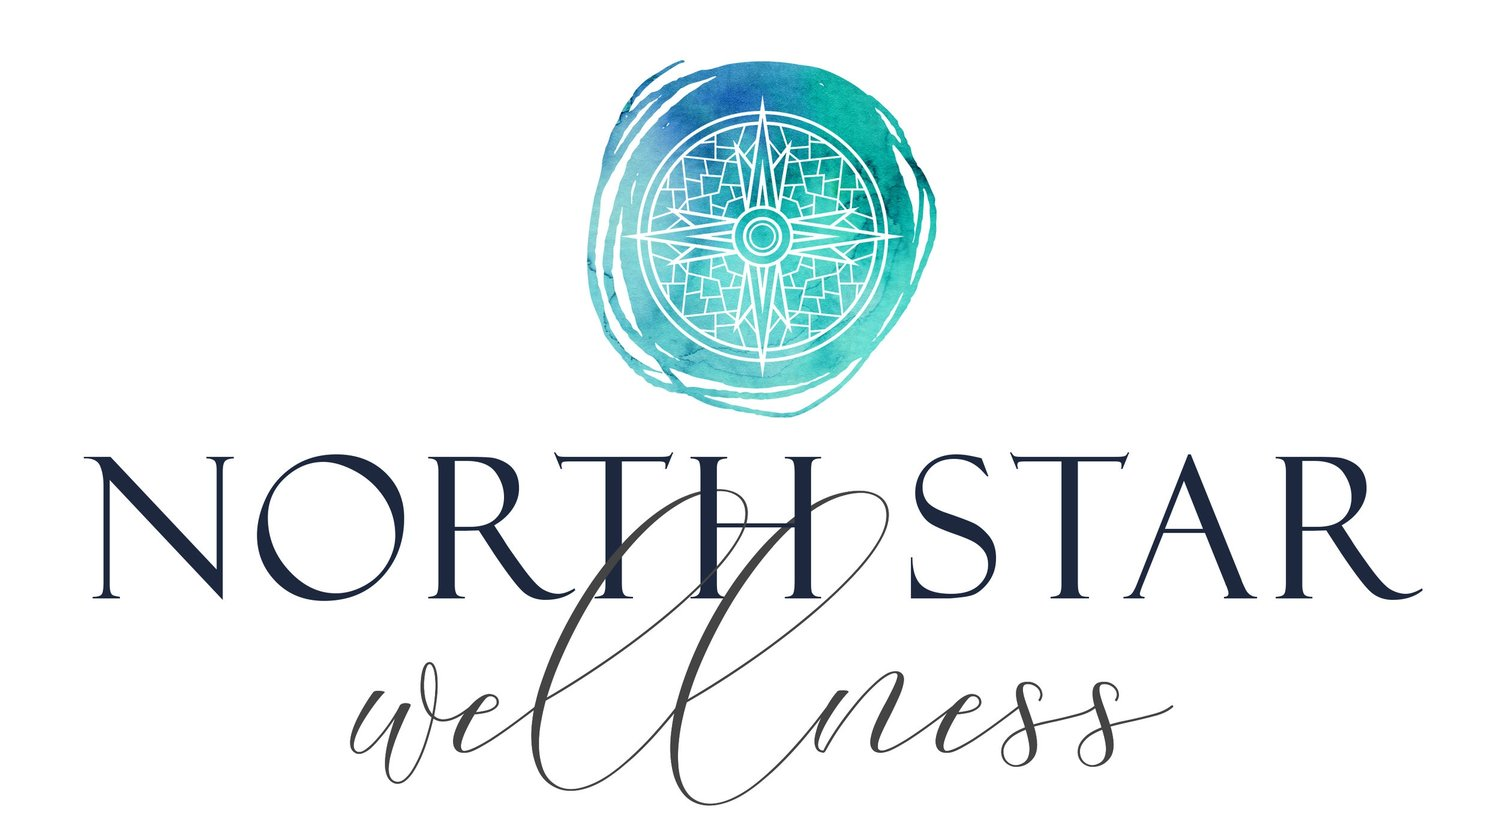 North Star Wellness